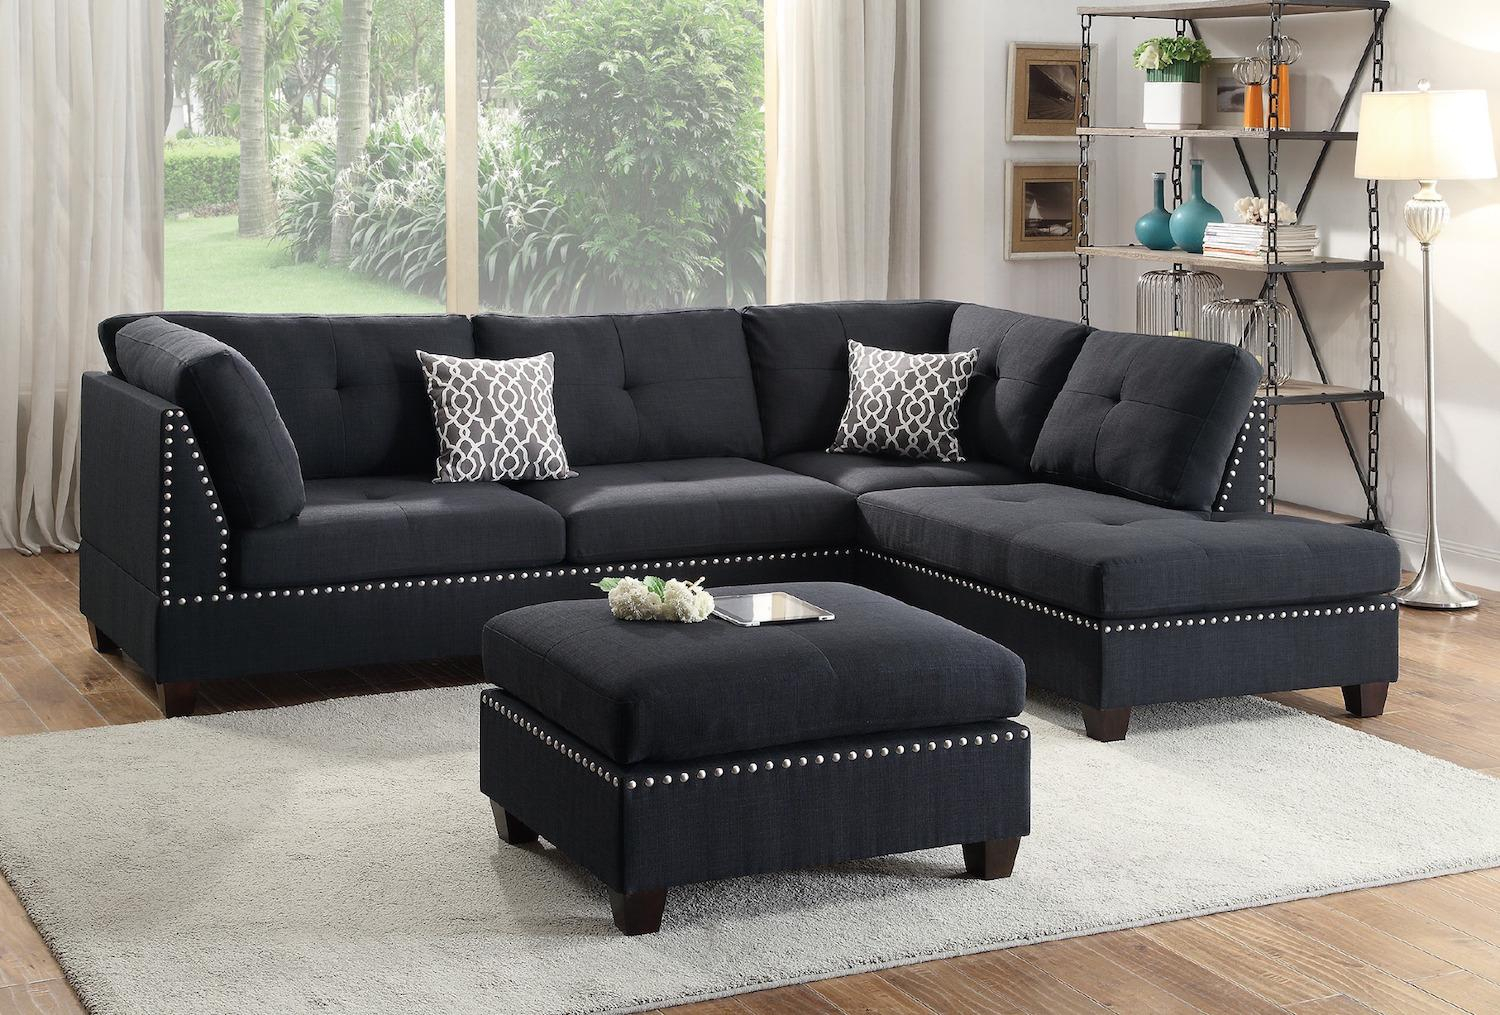 Reversible Sectional Sofas Reversible Espresso Leather With Regard To Felton Modern Style Pullout Sleeper Sofas Black (View 6 of 15)